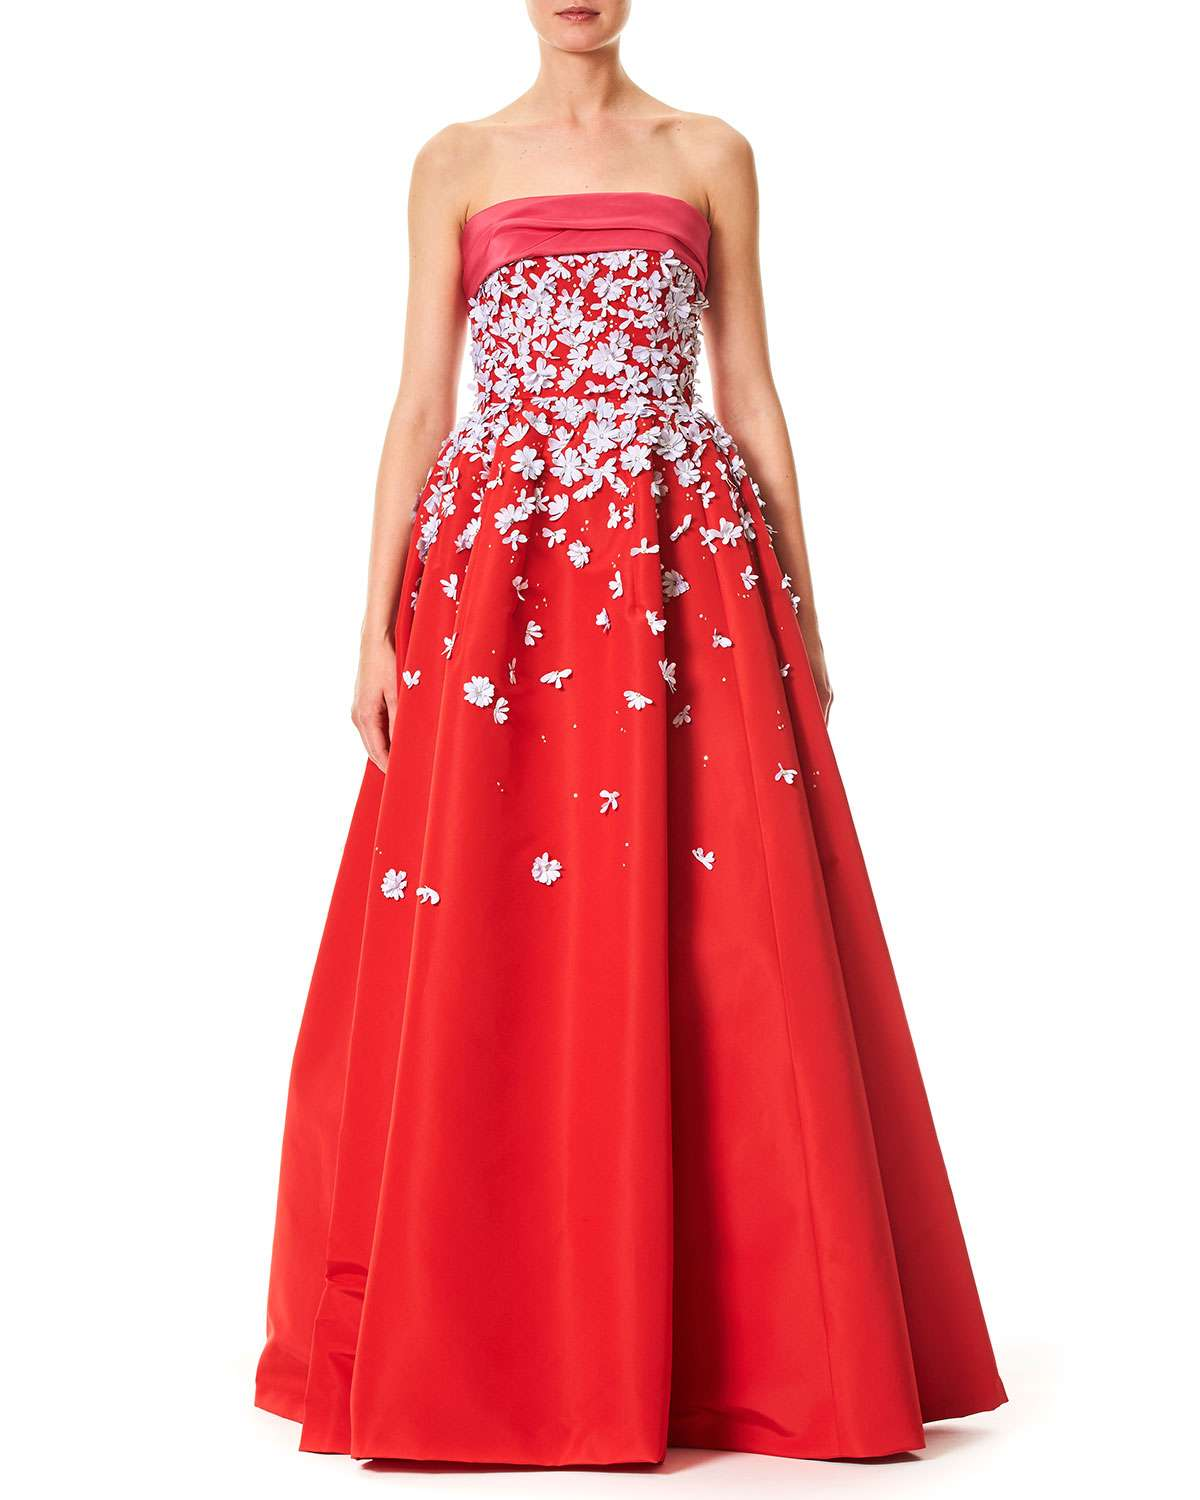 Strapless Silk Faille Evening Ball Gown with Floral Appliques